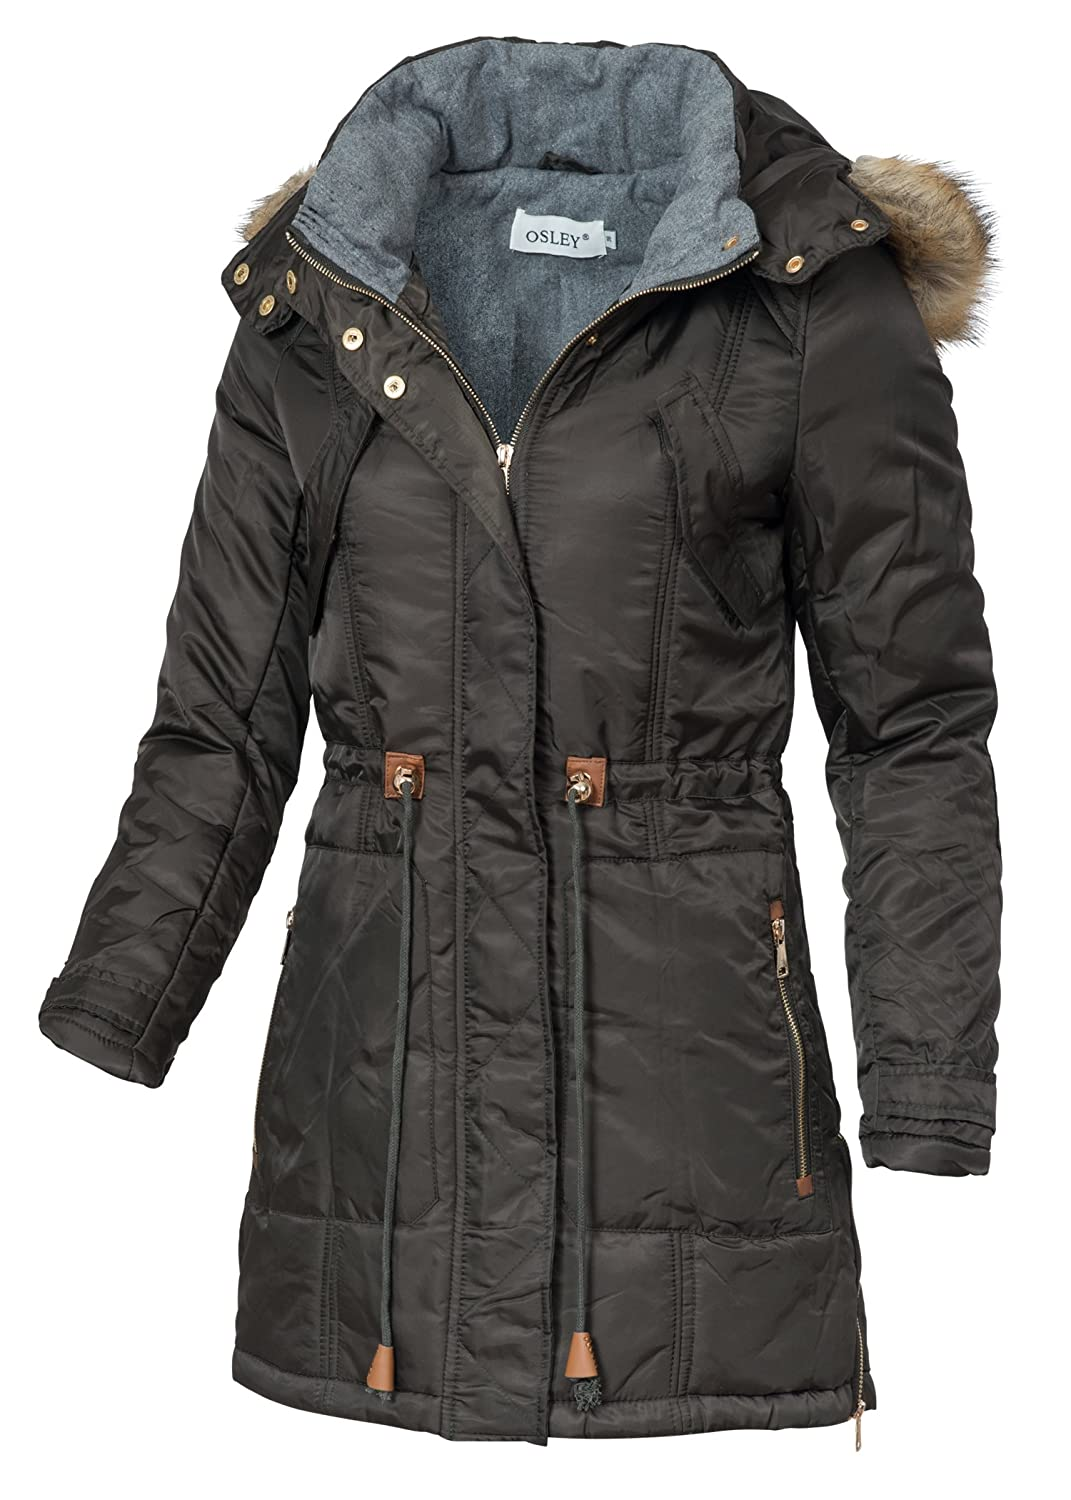 in vogue Damen Wintermantel IV065, warmer Mantel mit Kordelzug, Kapuze & Webpelz, khaki